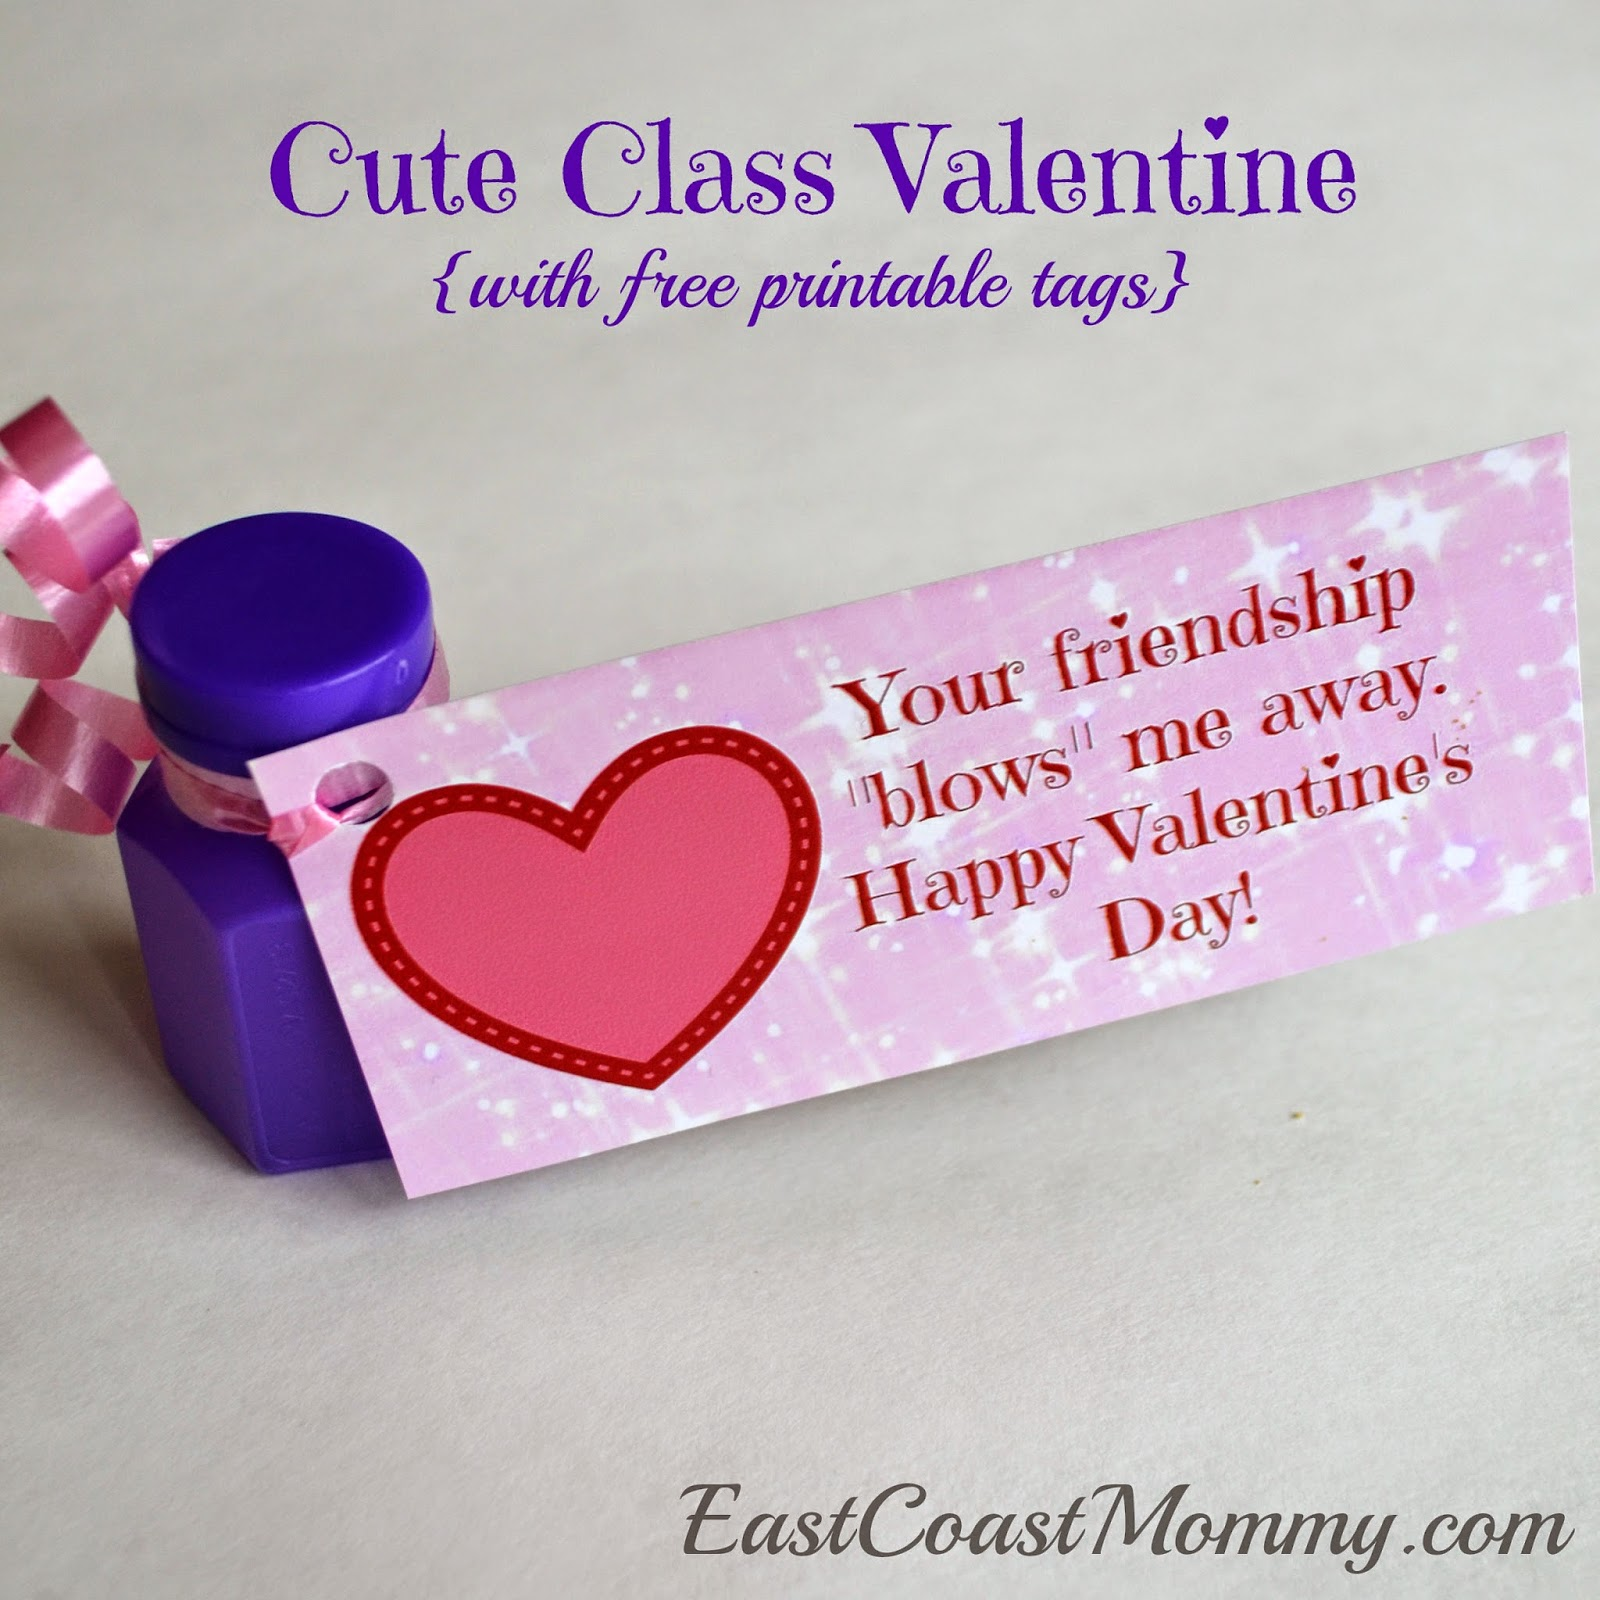 East Coast Mommy Bubble Valentines With Free Printable Tags